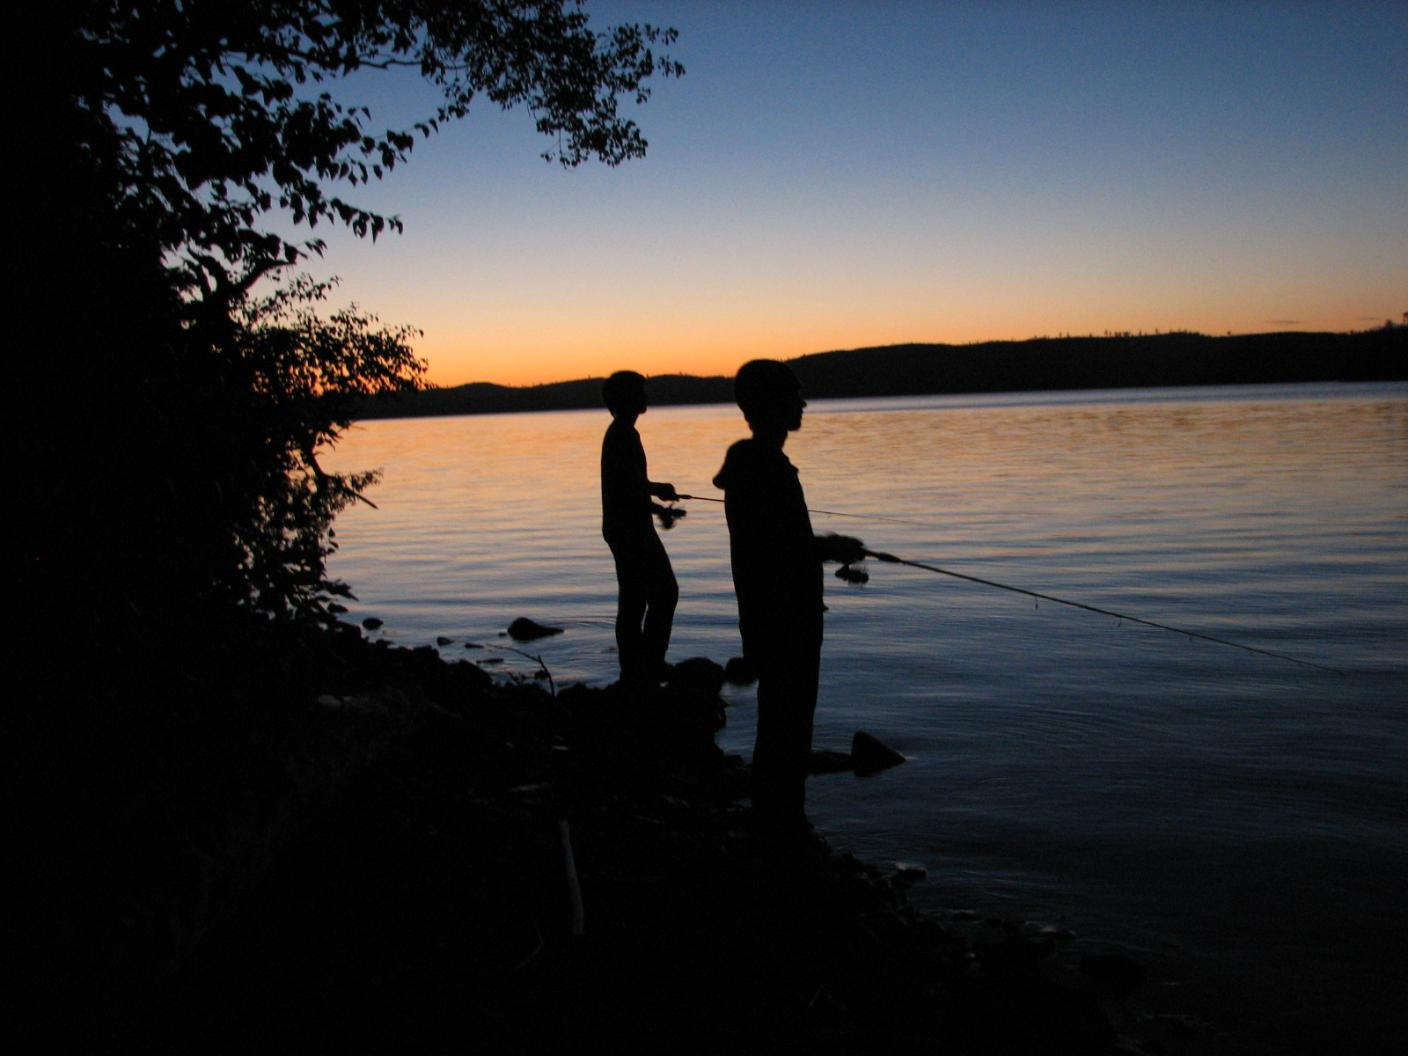 Hamer nature photos 187 boundary waters -  Memories Just My 2 Sons And Myself Fishing And Camping On Mountain Lake We Caught Lakers Right Off Shore Of Our Campsite